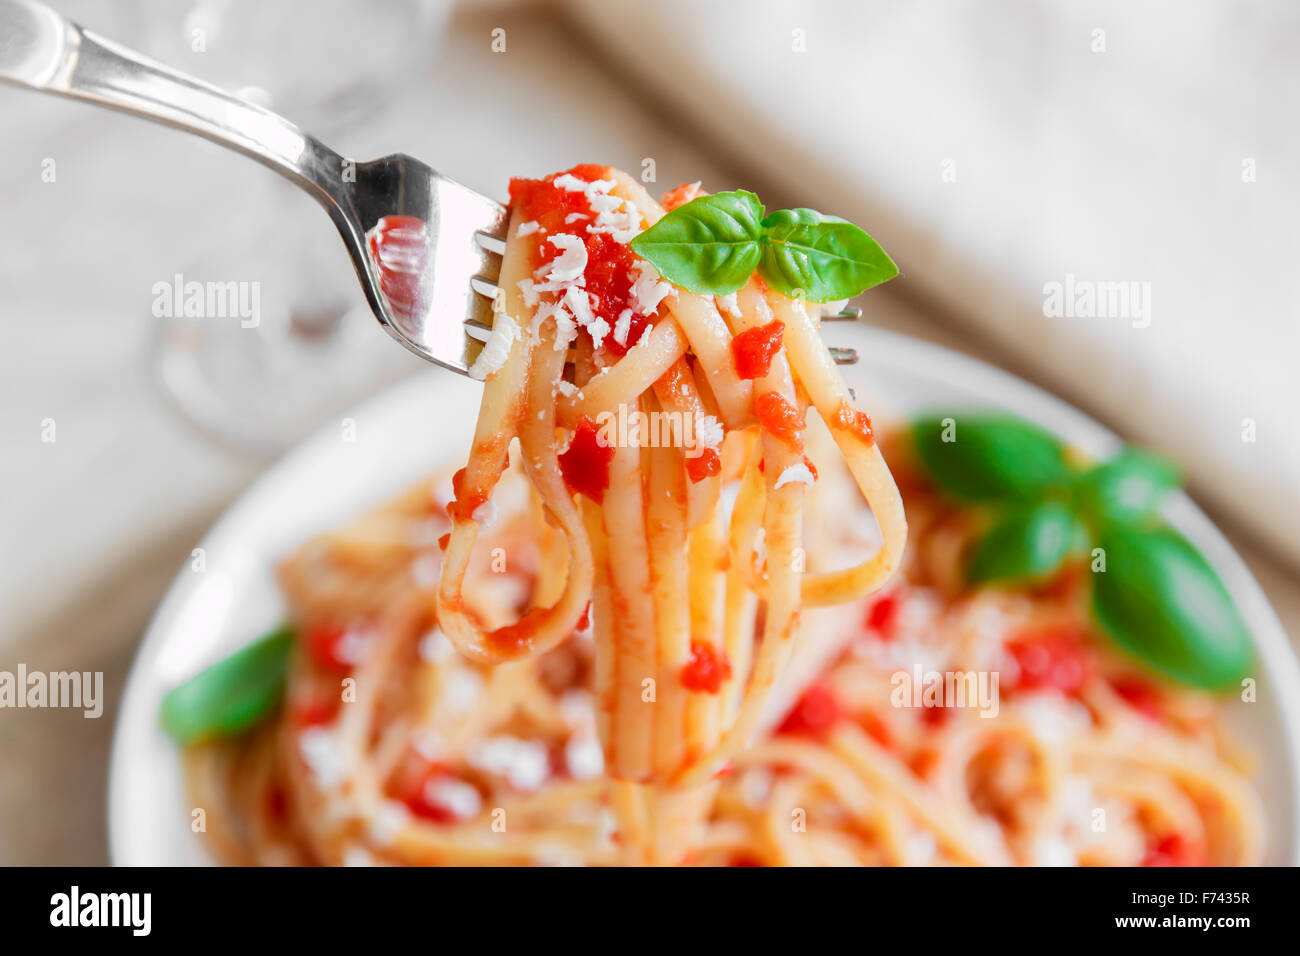 linguine pasta with tomato sauce and cheese on a plate - Stock Image